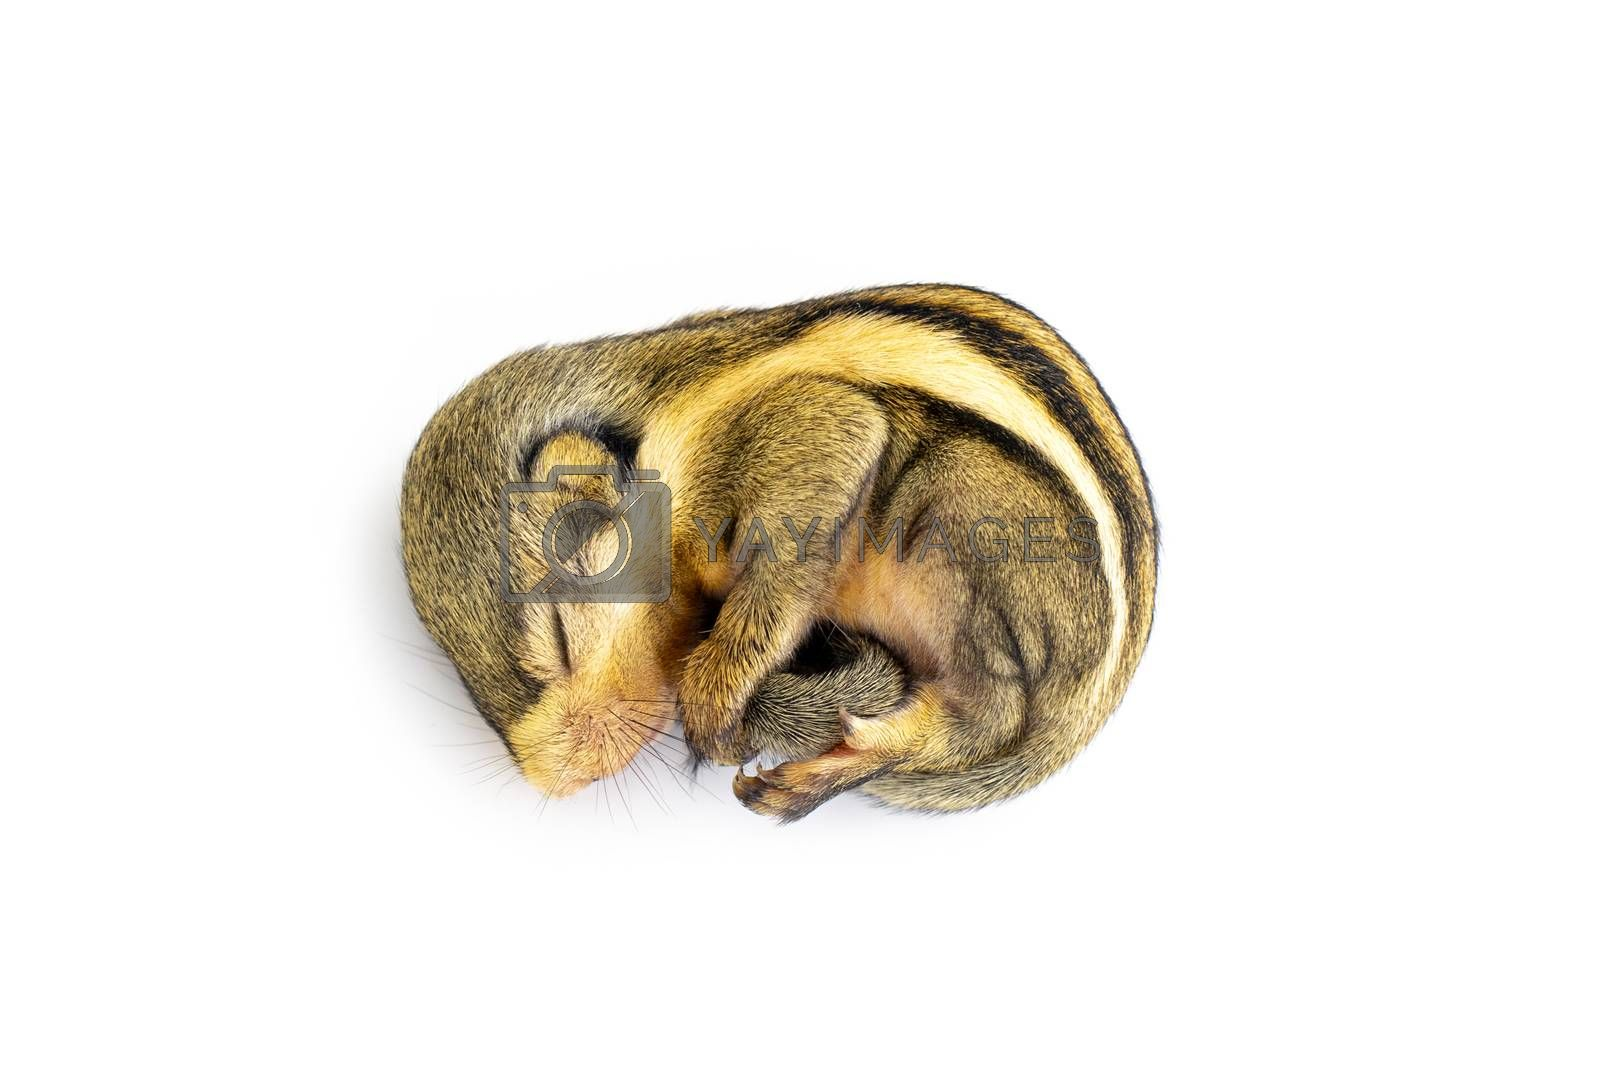 Baby himalayan striped squirrel or Baby burmese striped squirrel(Tamiops mcclellandii) on white background. Wild Animals.